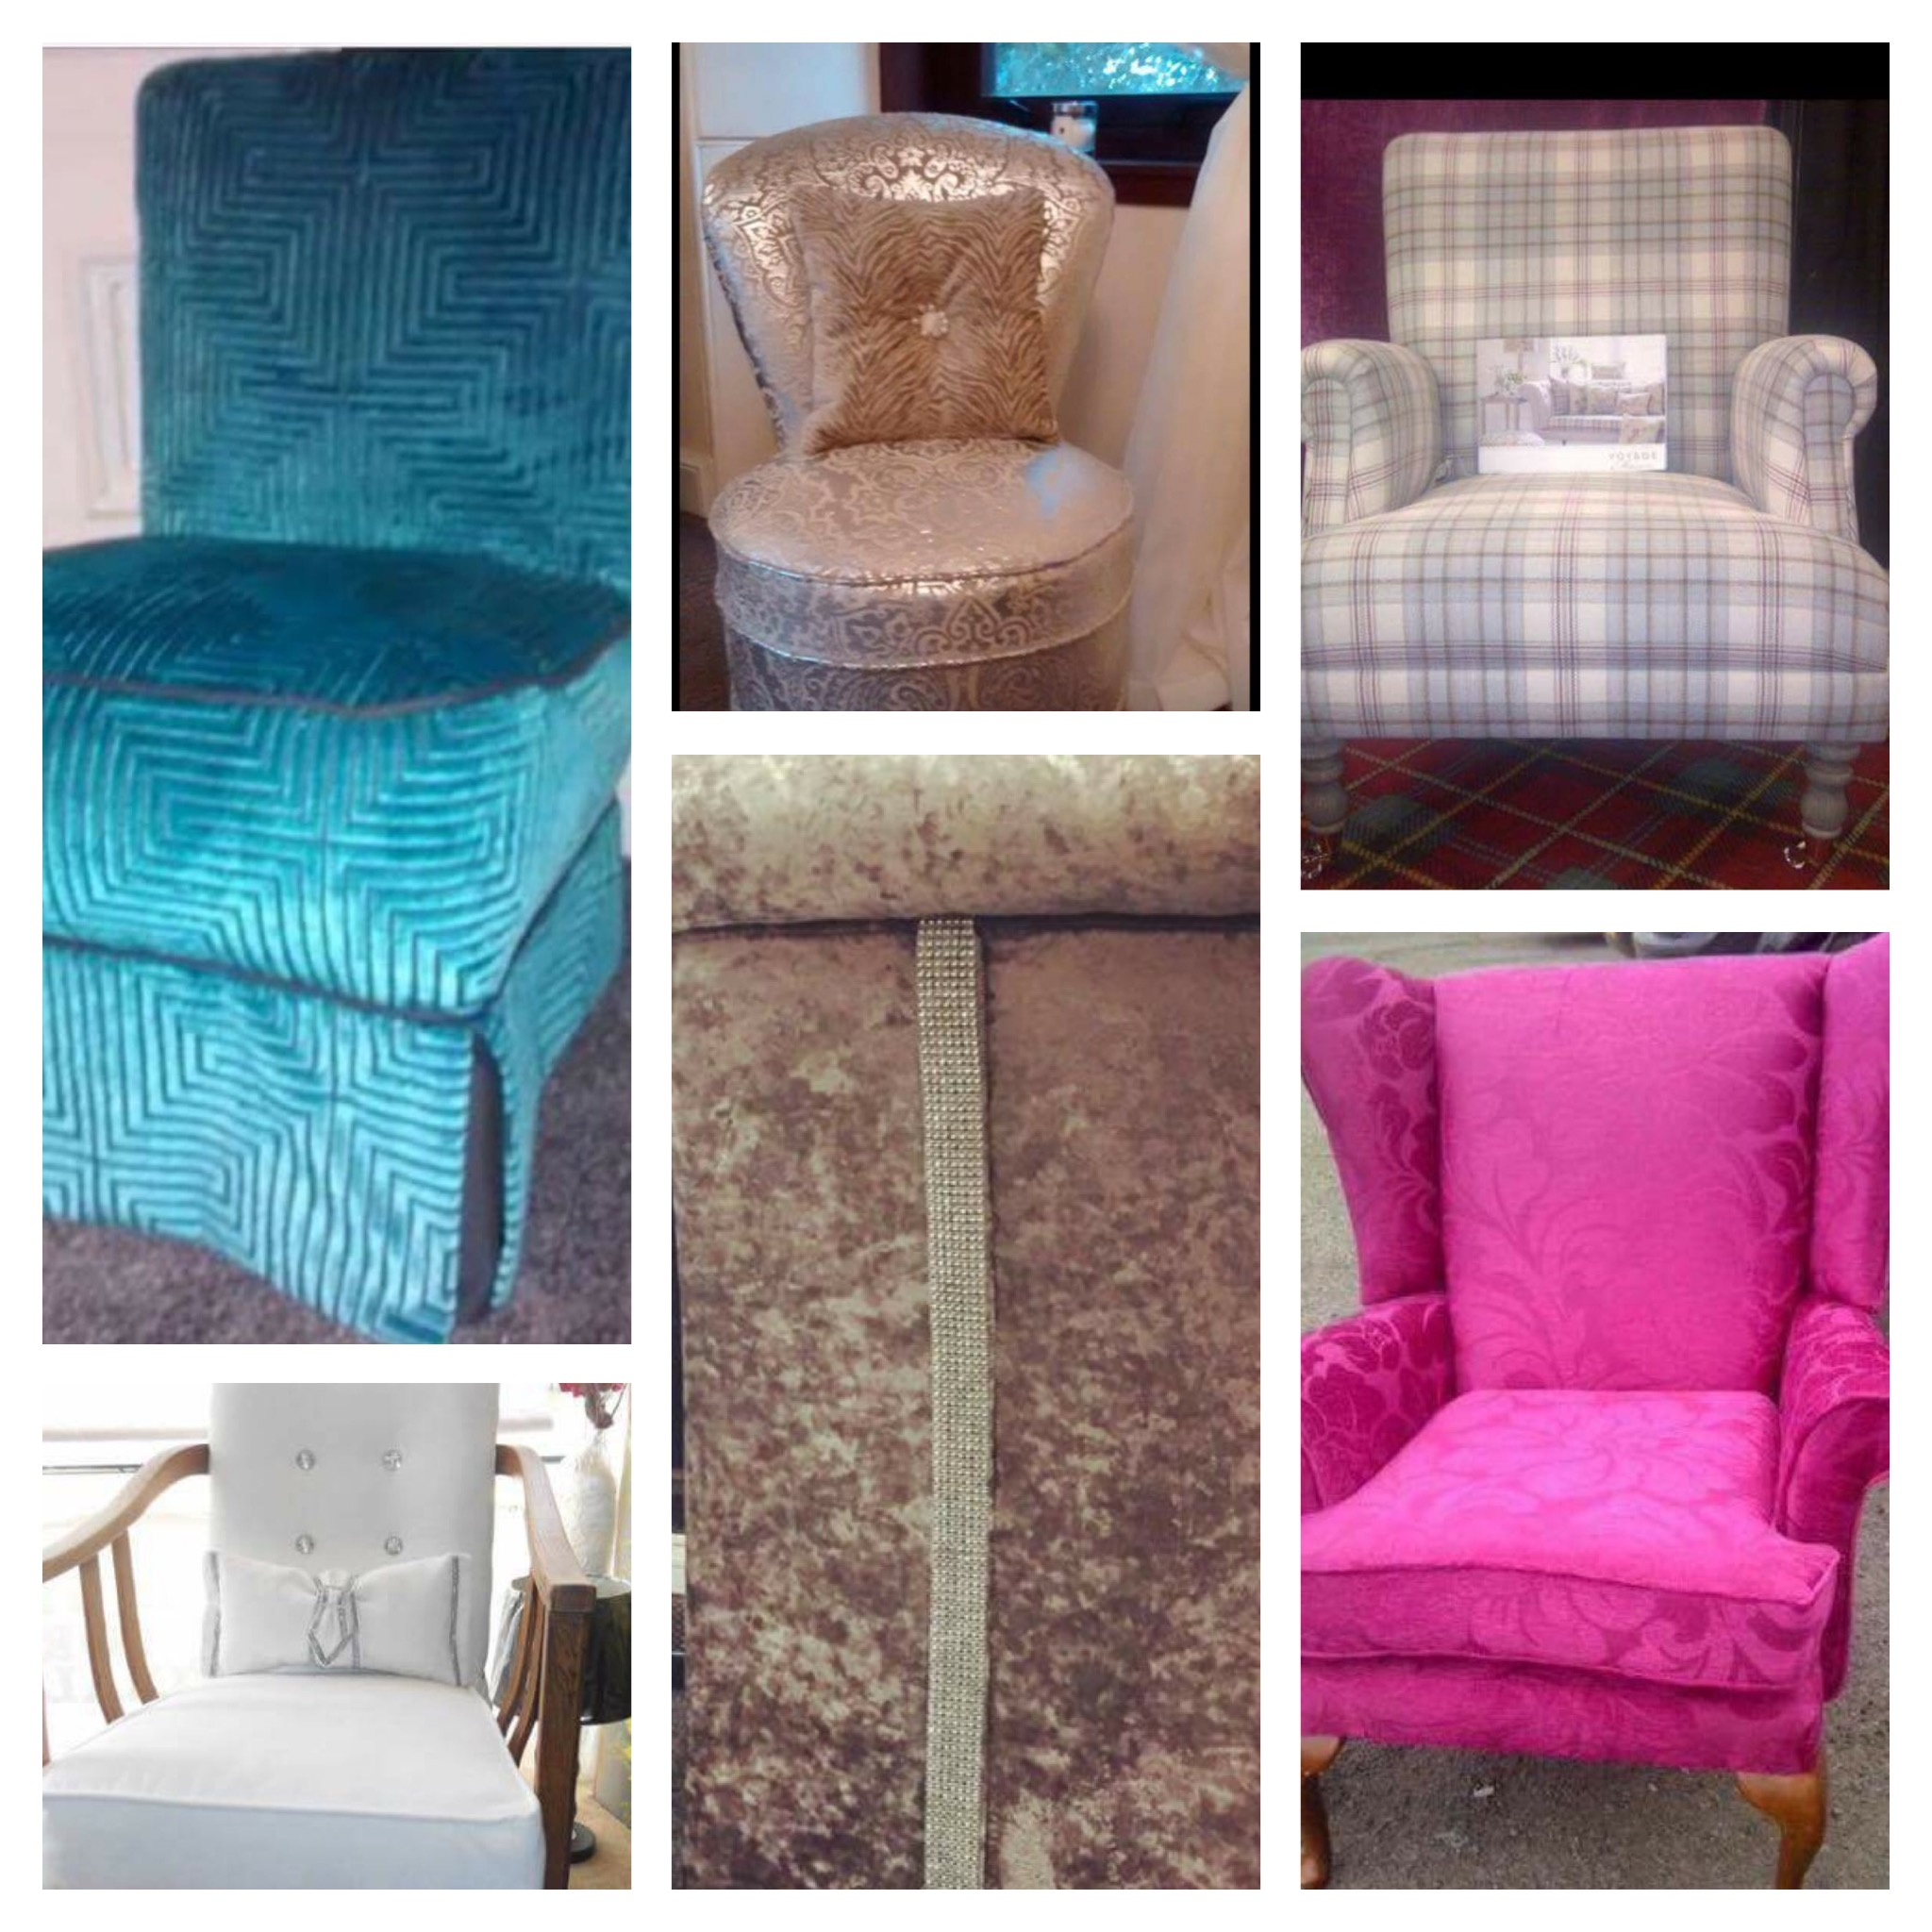 A selection of different styls of furniture - all looking fabulous